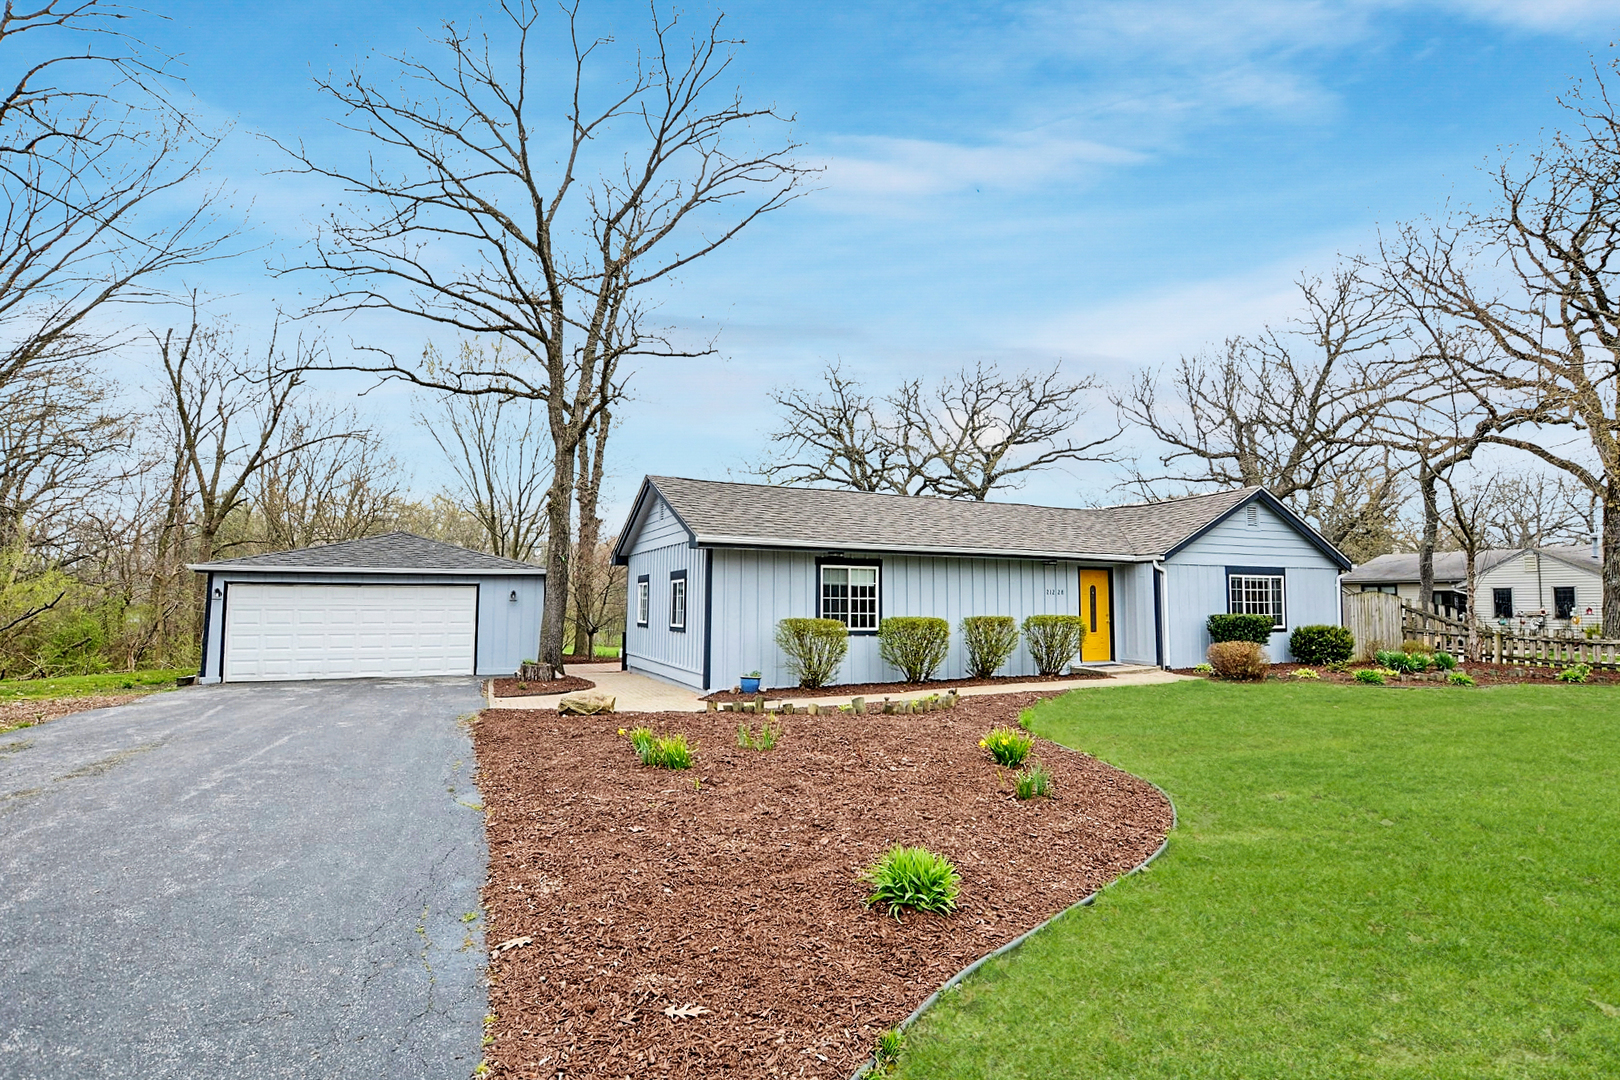 21228 South 80th Avenue, Frankfort in Will County, IL 60423 Home for Sale